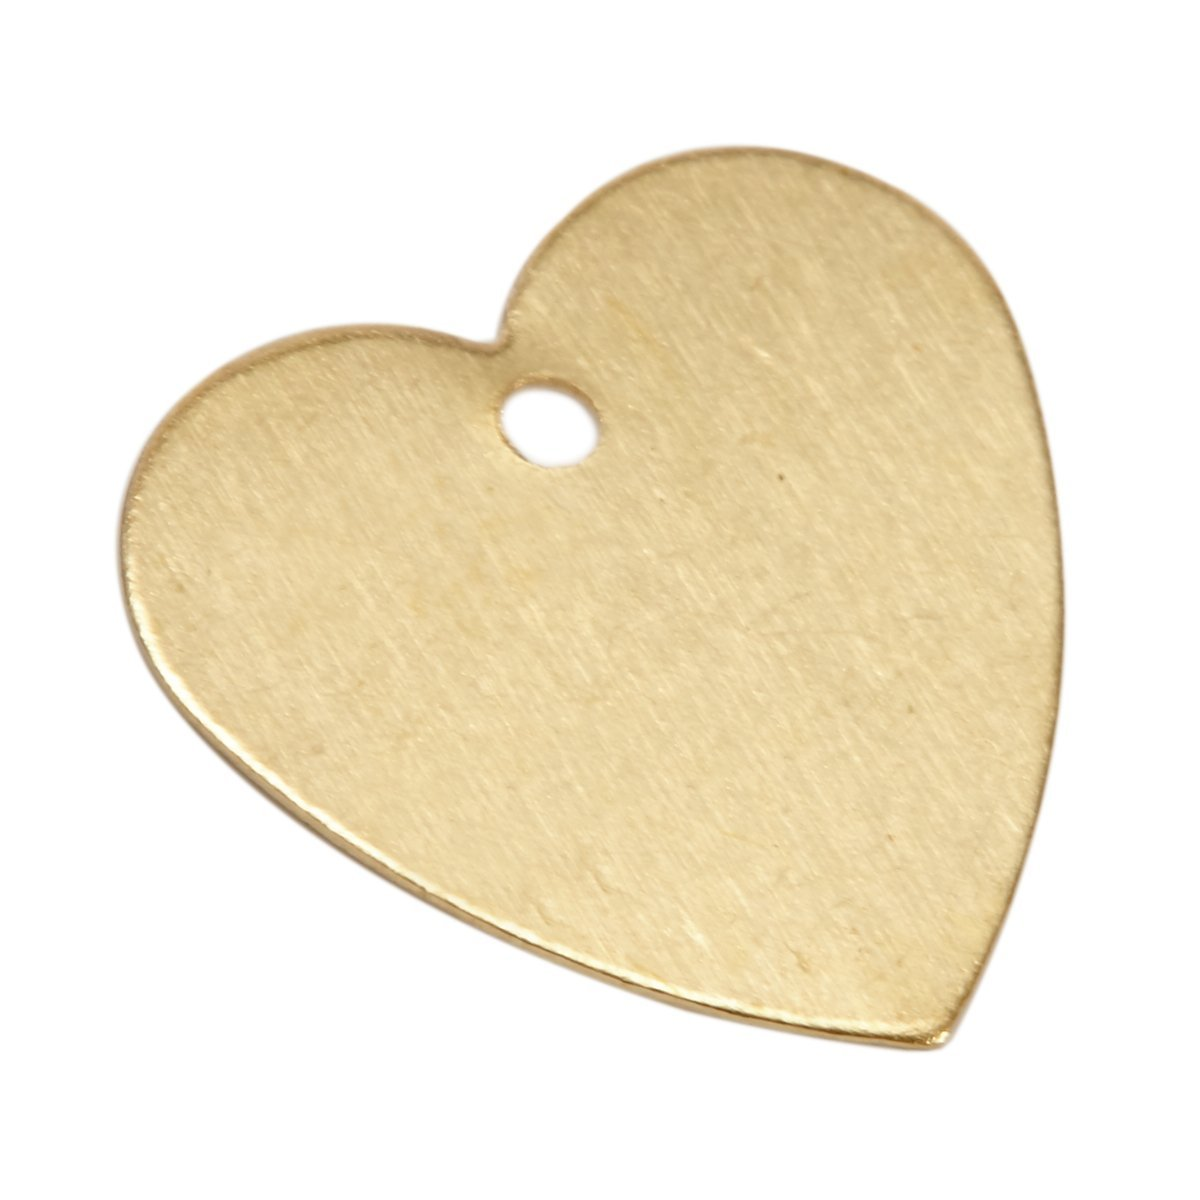 100 Brass Heart Metal Stamping Blanks with Hole 13mm X 13mm Heart Metal Blanks